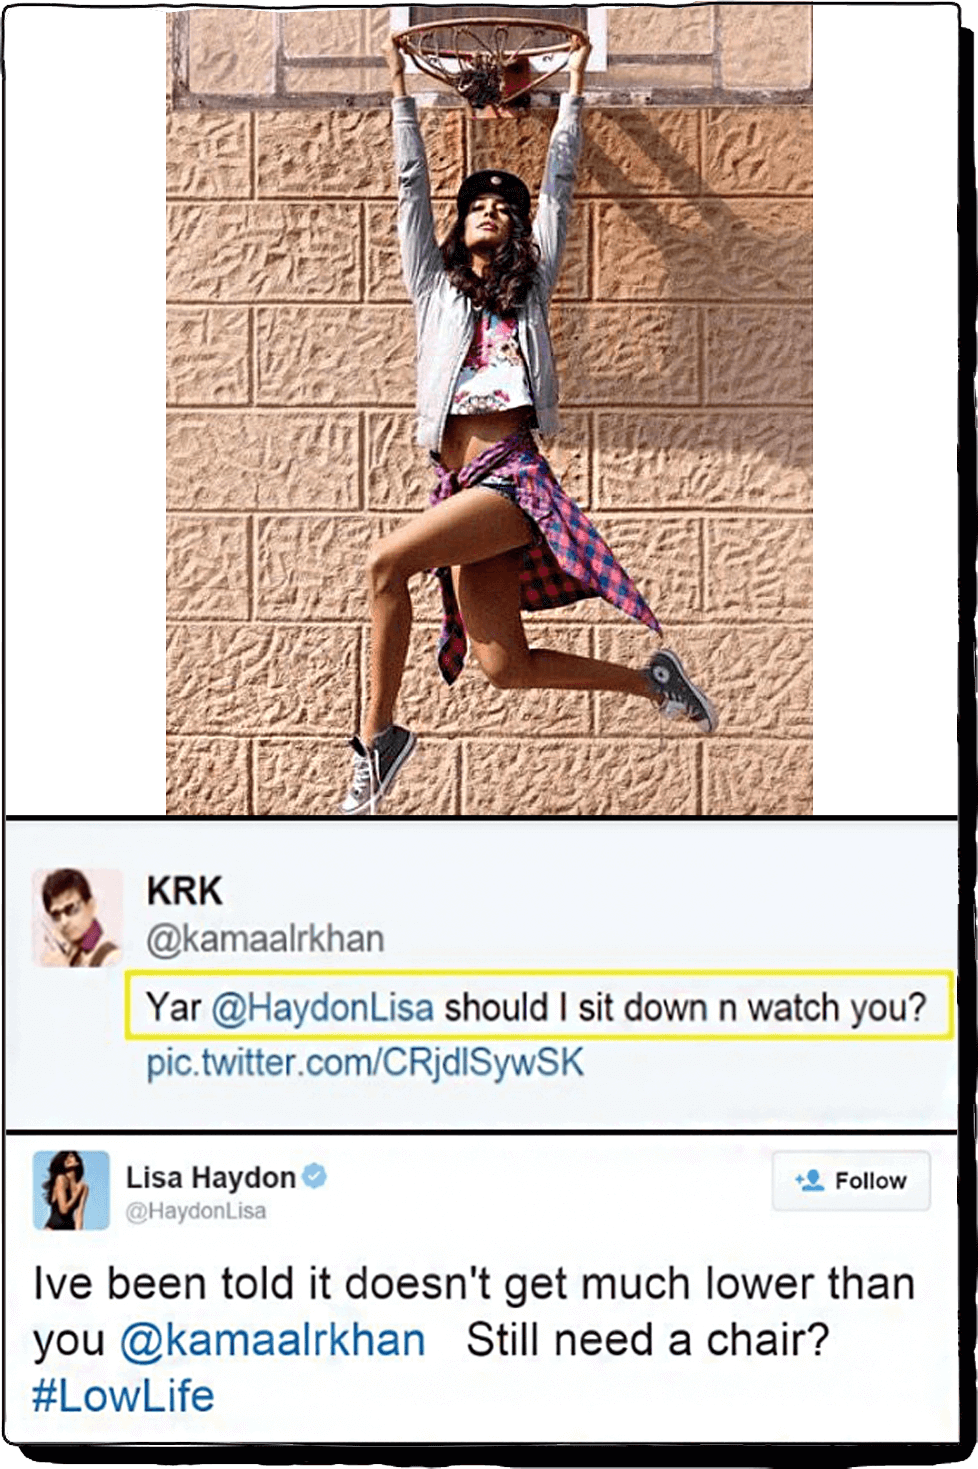 When KRK took a dig at Lisa Haydon